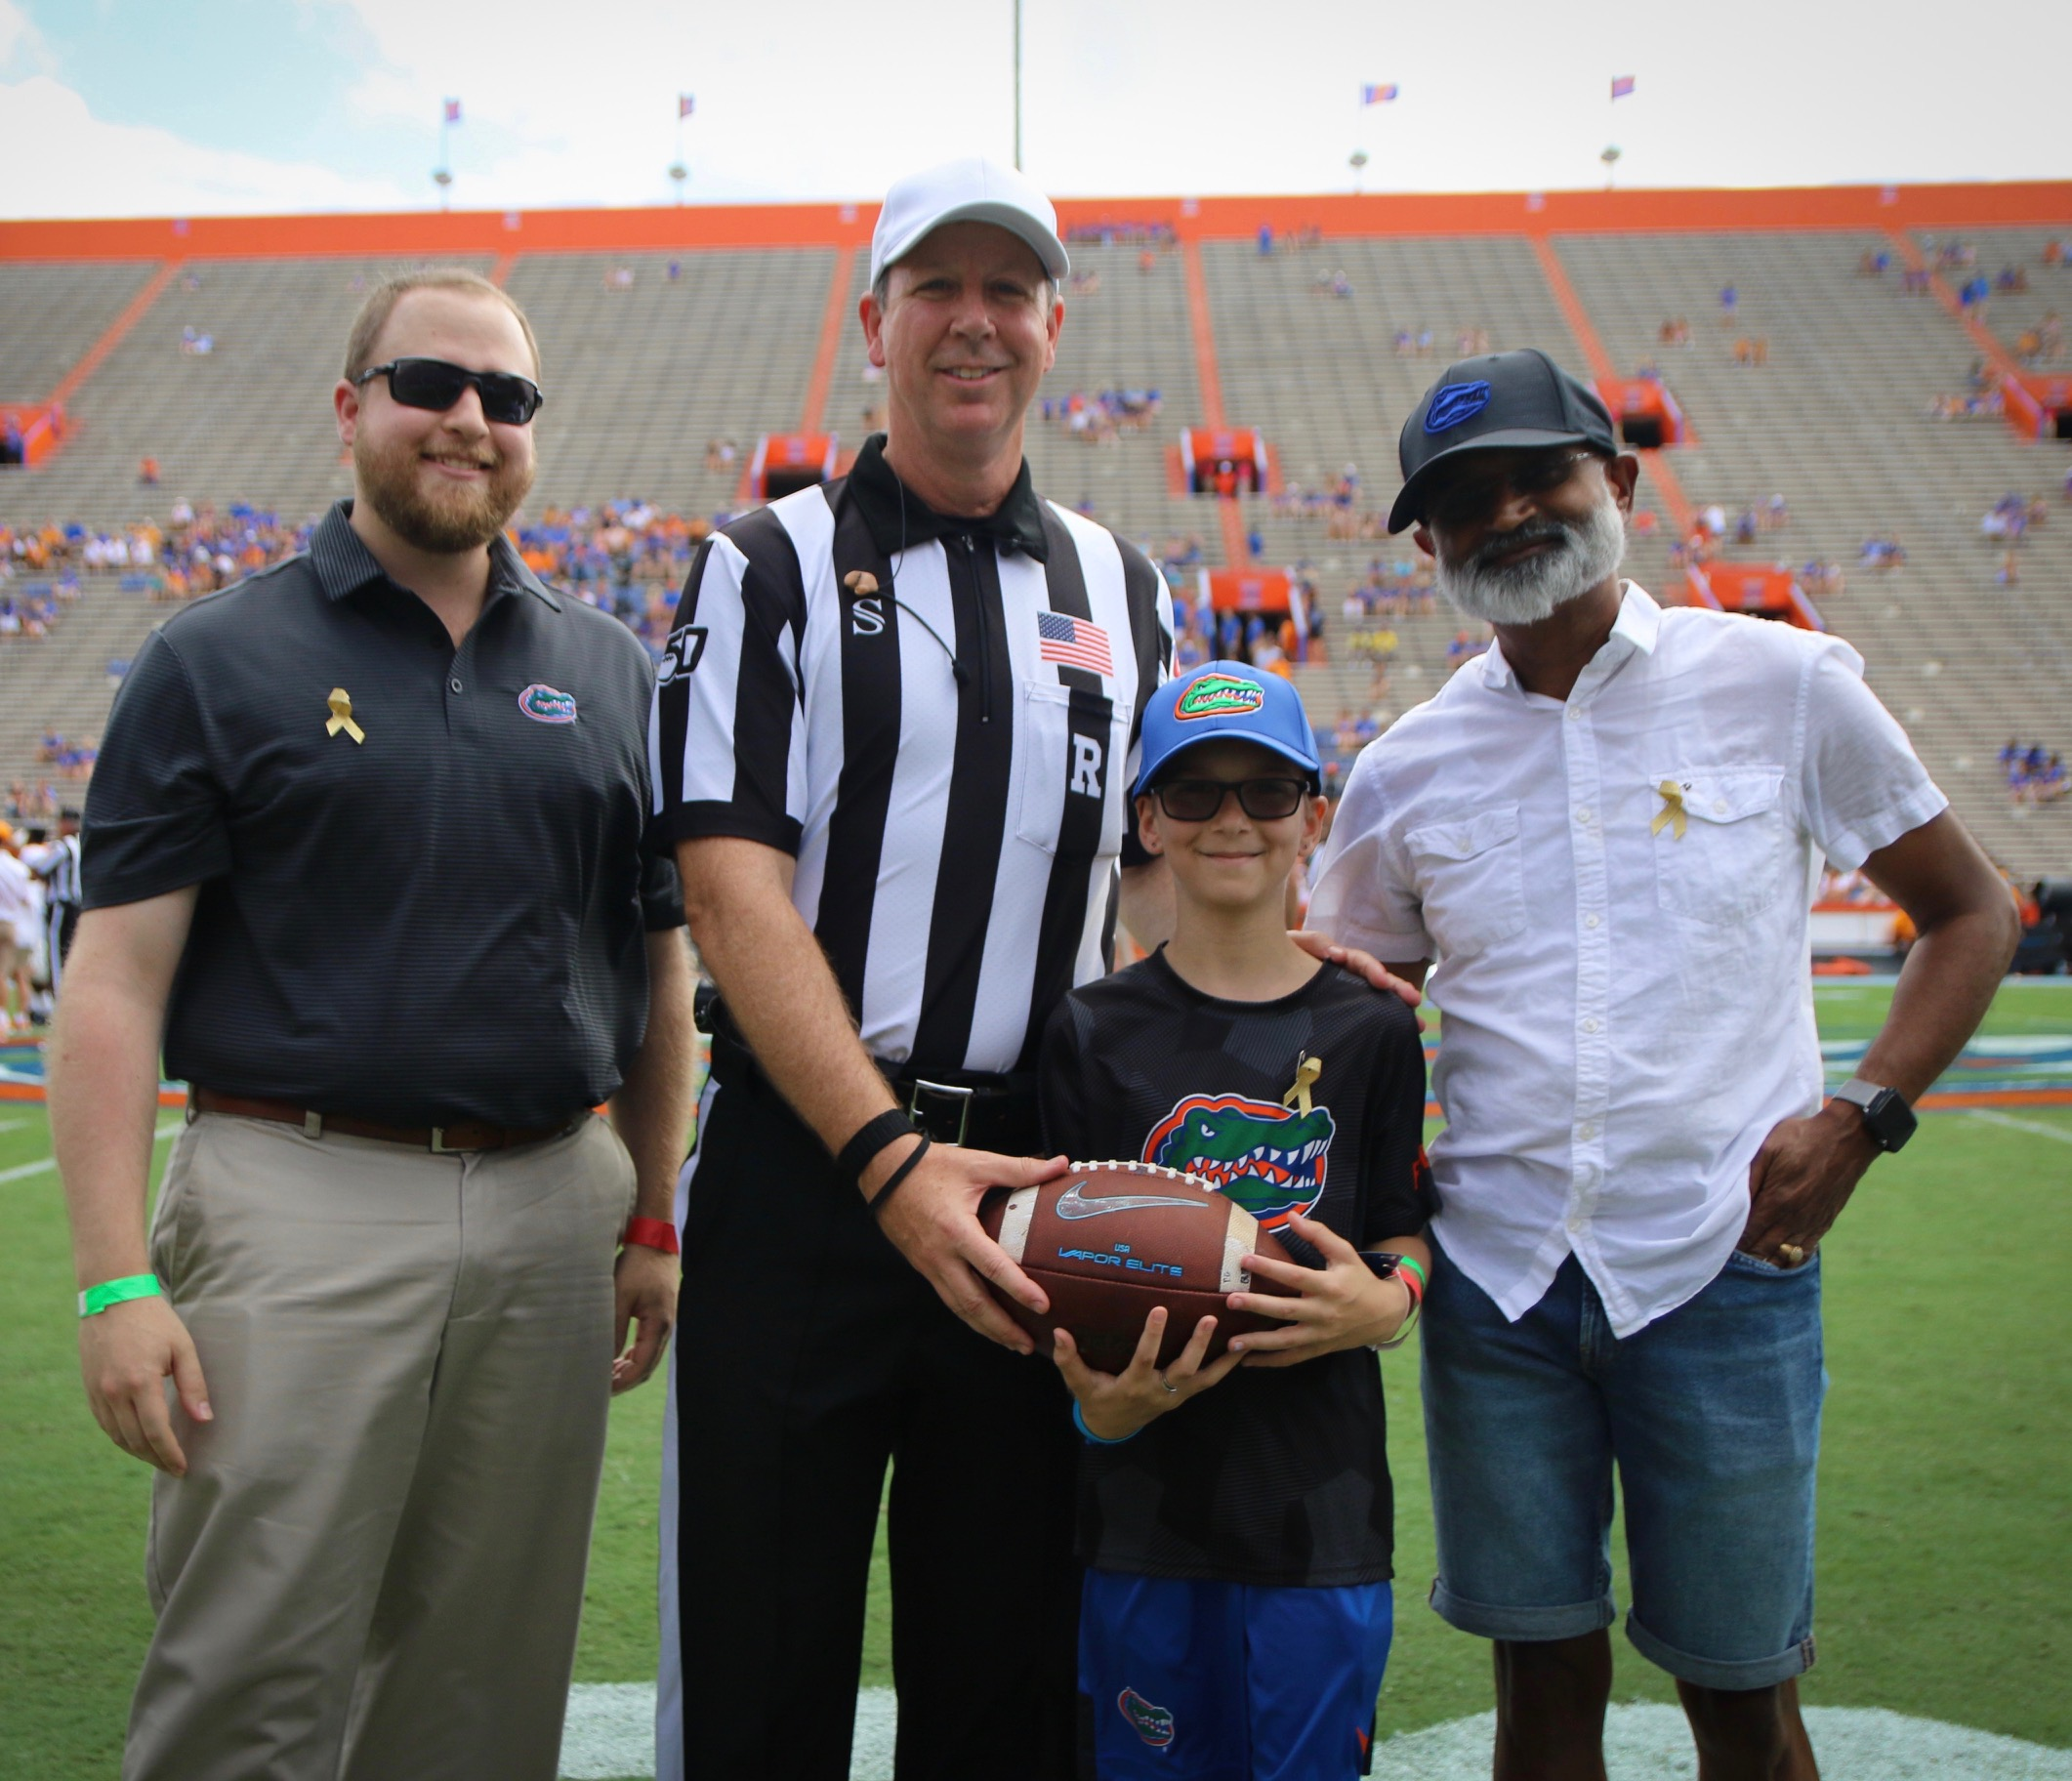 Mikah with the game ball, his doctor and a referee in The Swamp